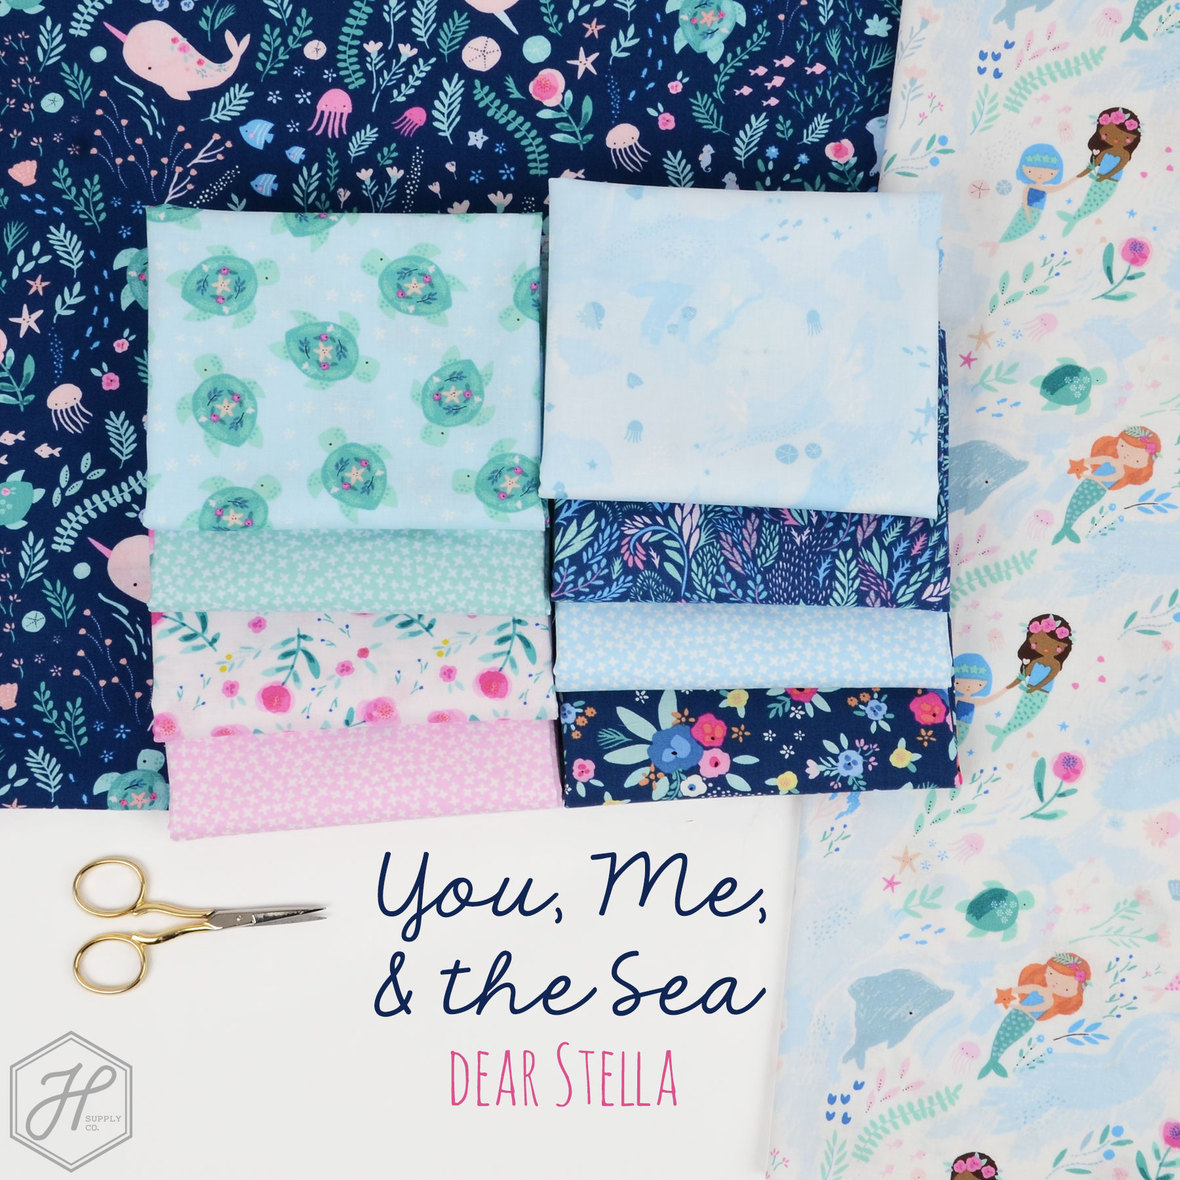 You-Me-and-the-Sea-Fabric-Dear-Stella-at-Hawthorne-Supply-Co